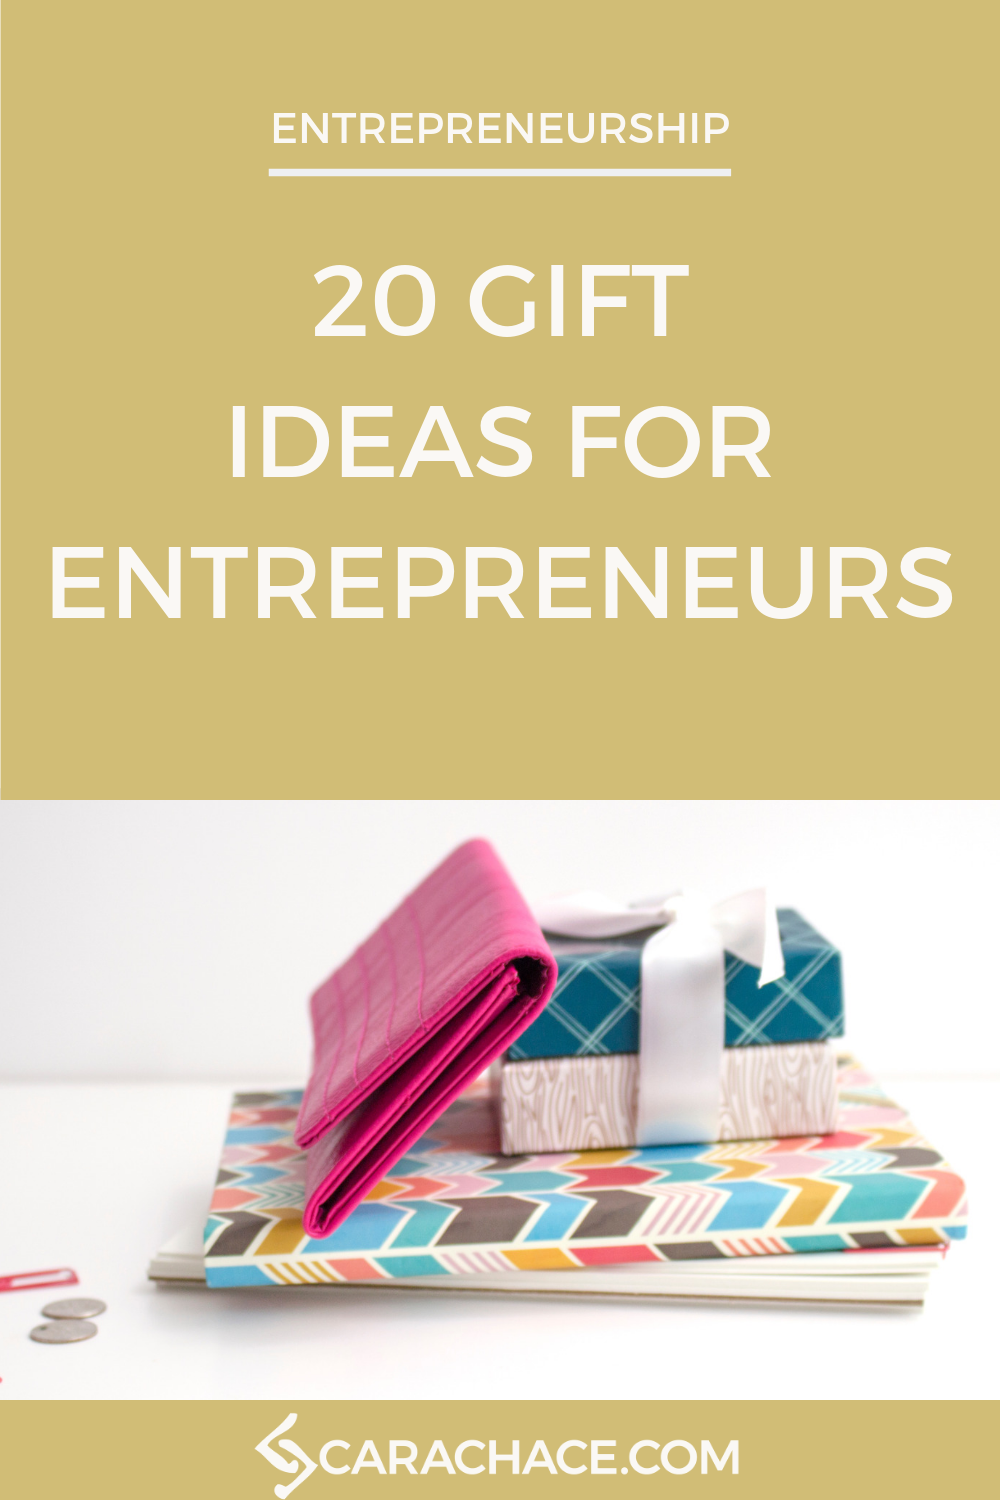 20 Gift Ideas Pin 1.png